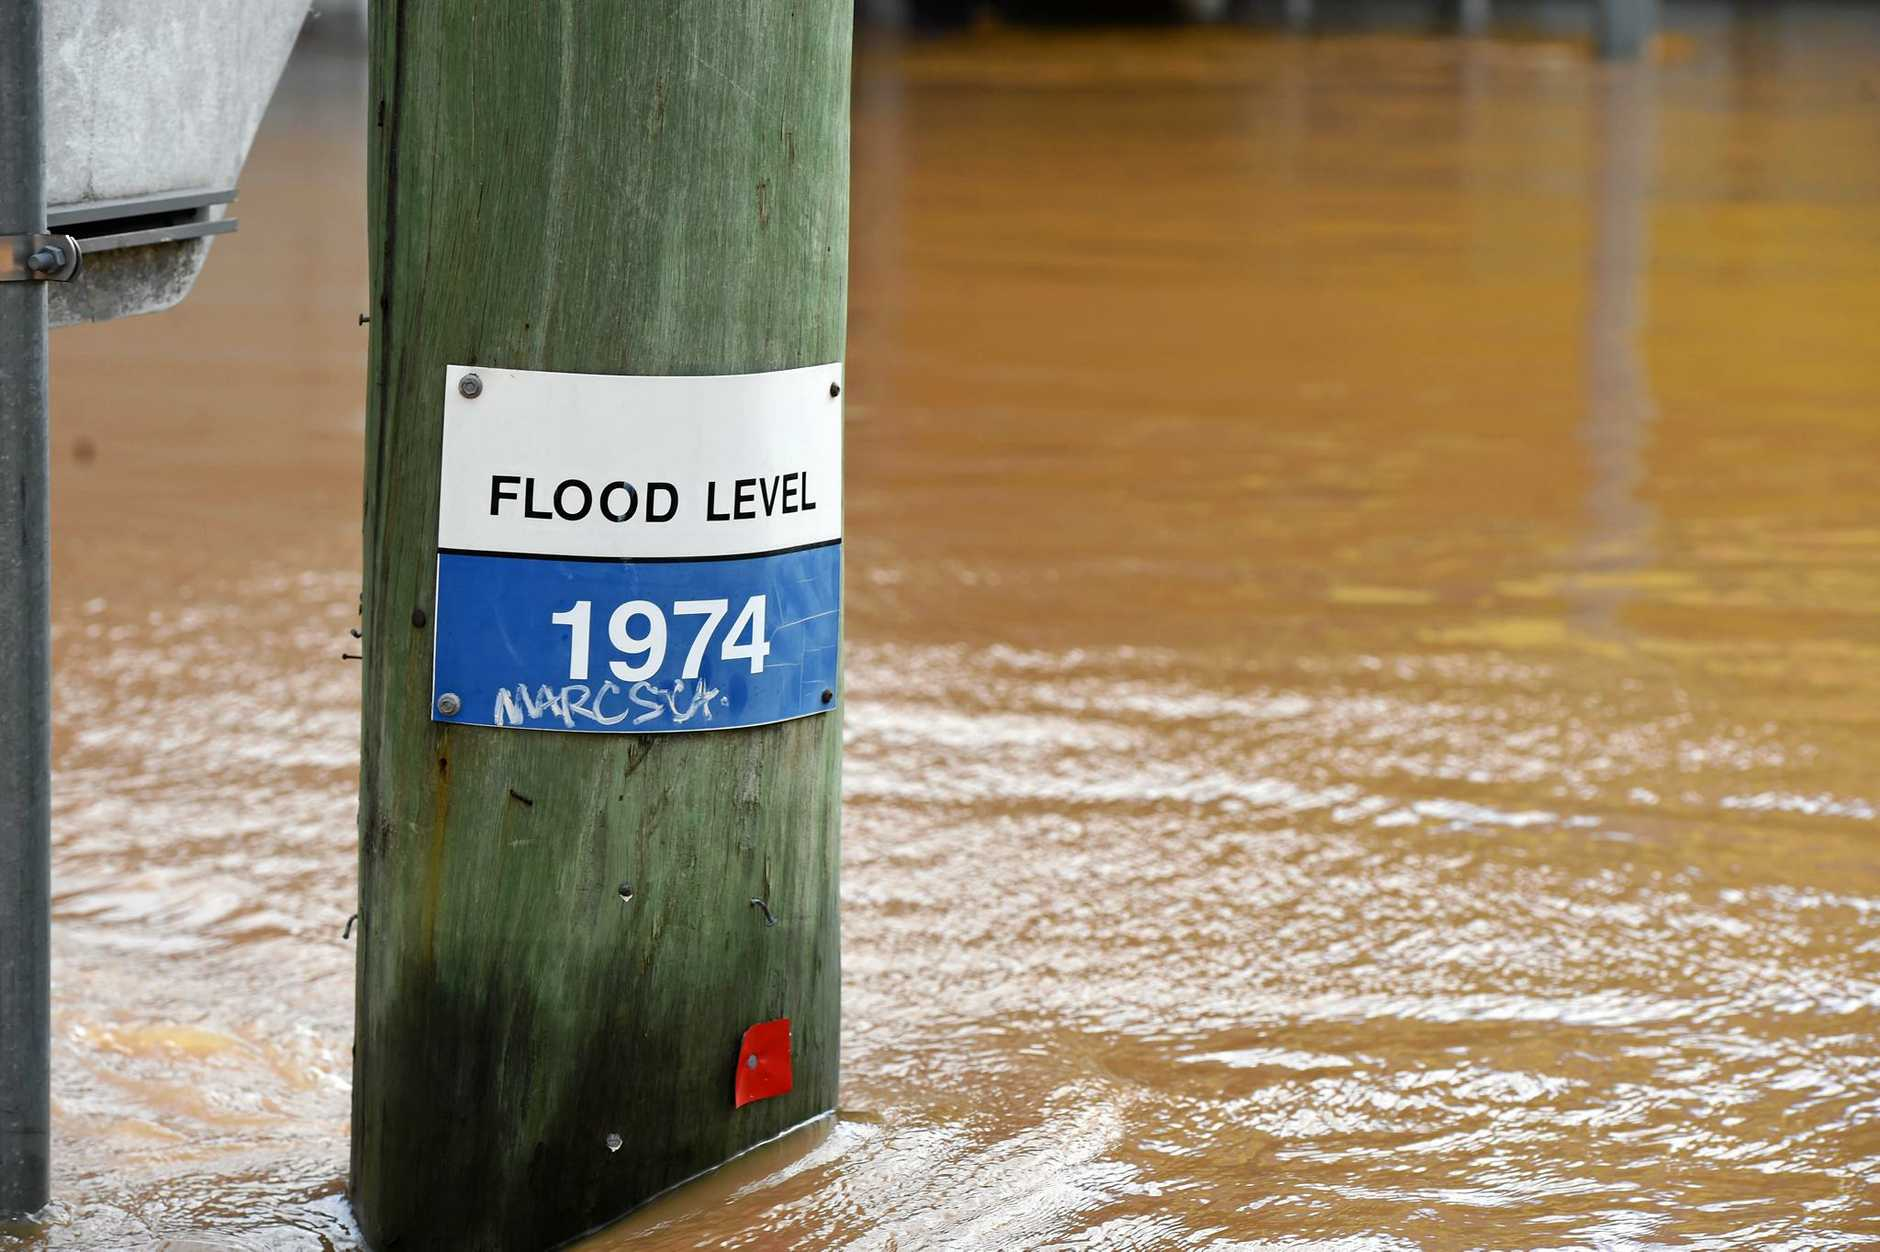 A former Sunshine Coast mayor has slammed a meeting held without the mayor or senior planning staff to make a decision that could pave the way for the development of flood-prone land.